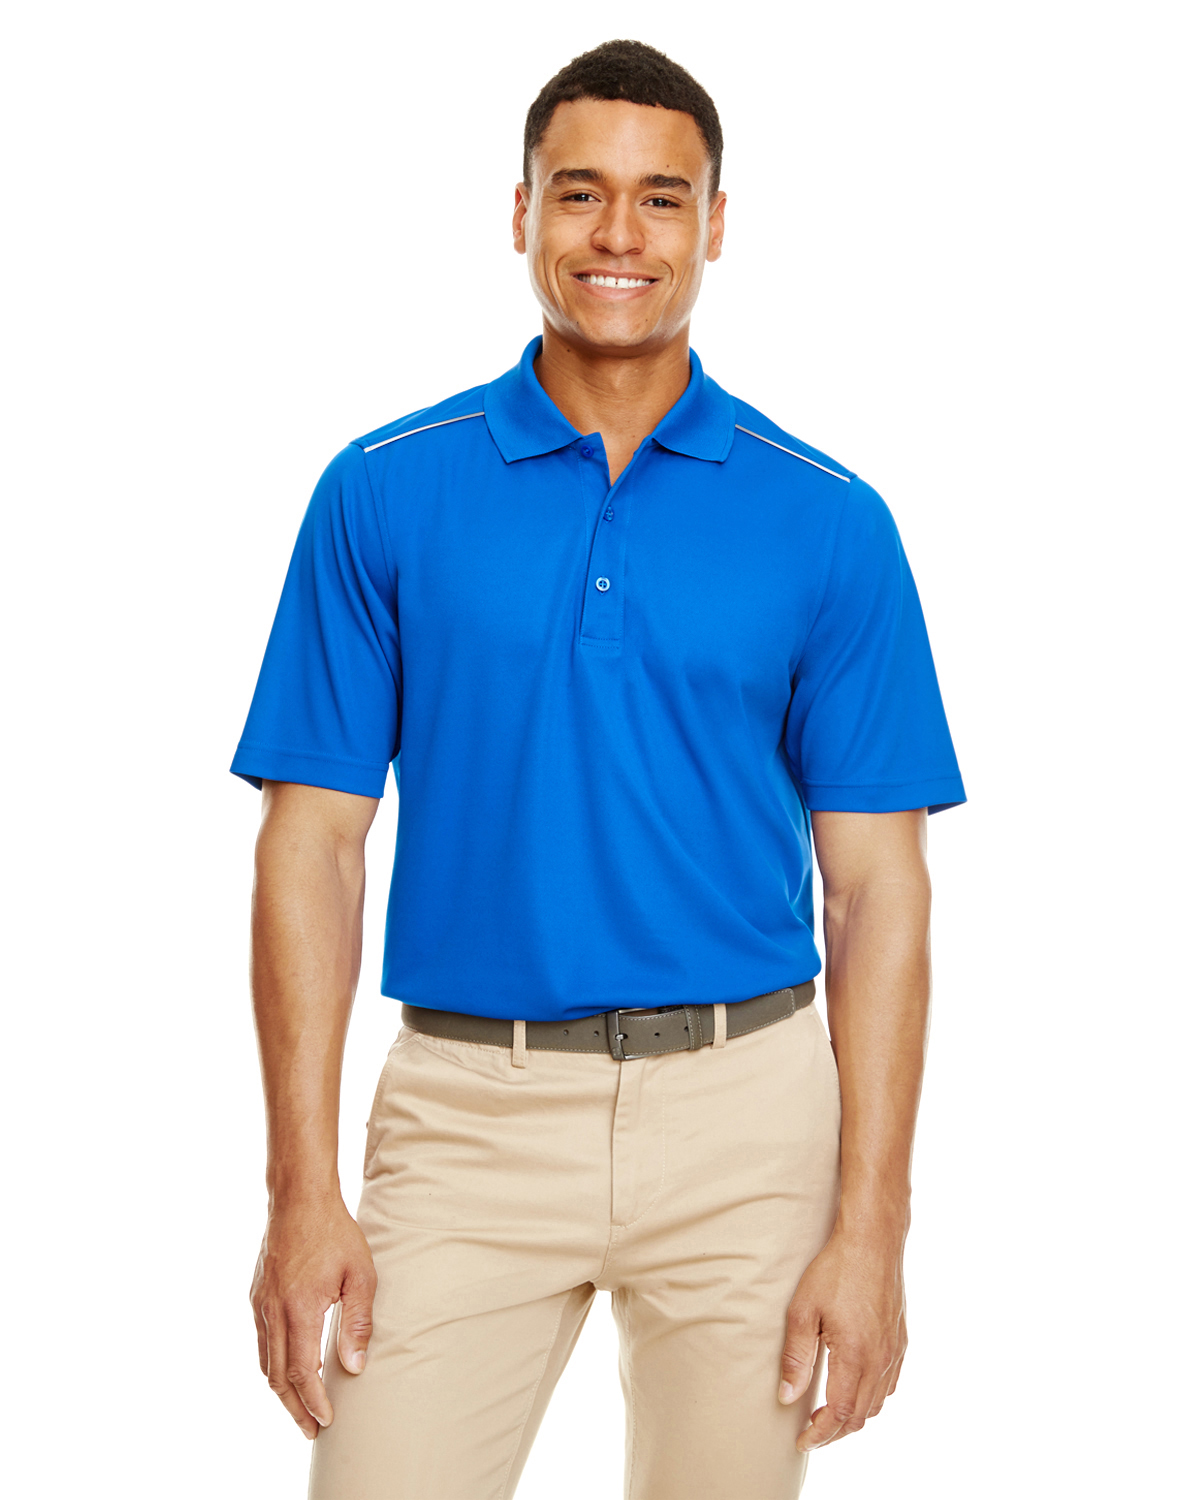 Men's Radiant Performance Pique© Polo with Reflective Piping